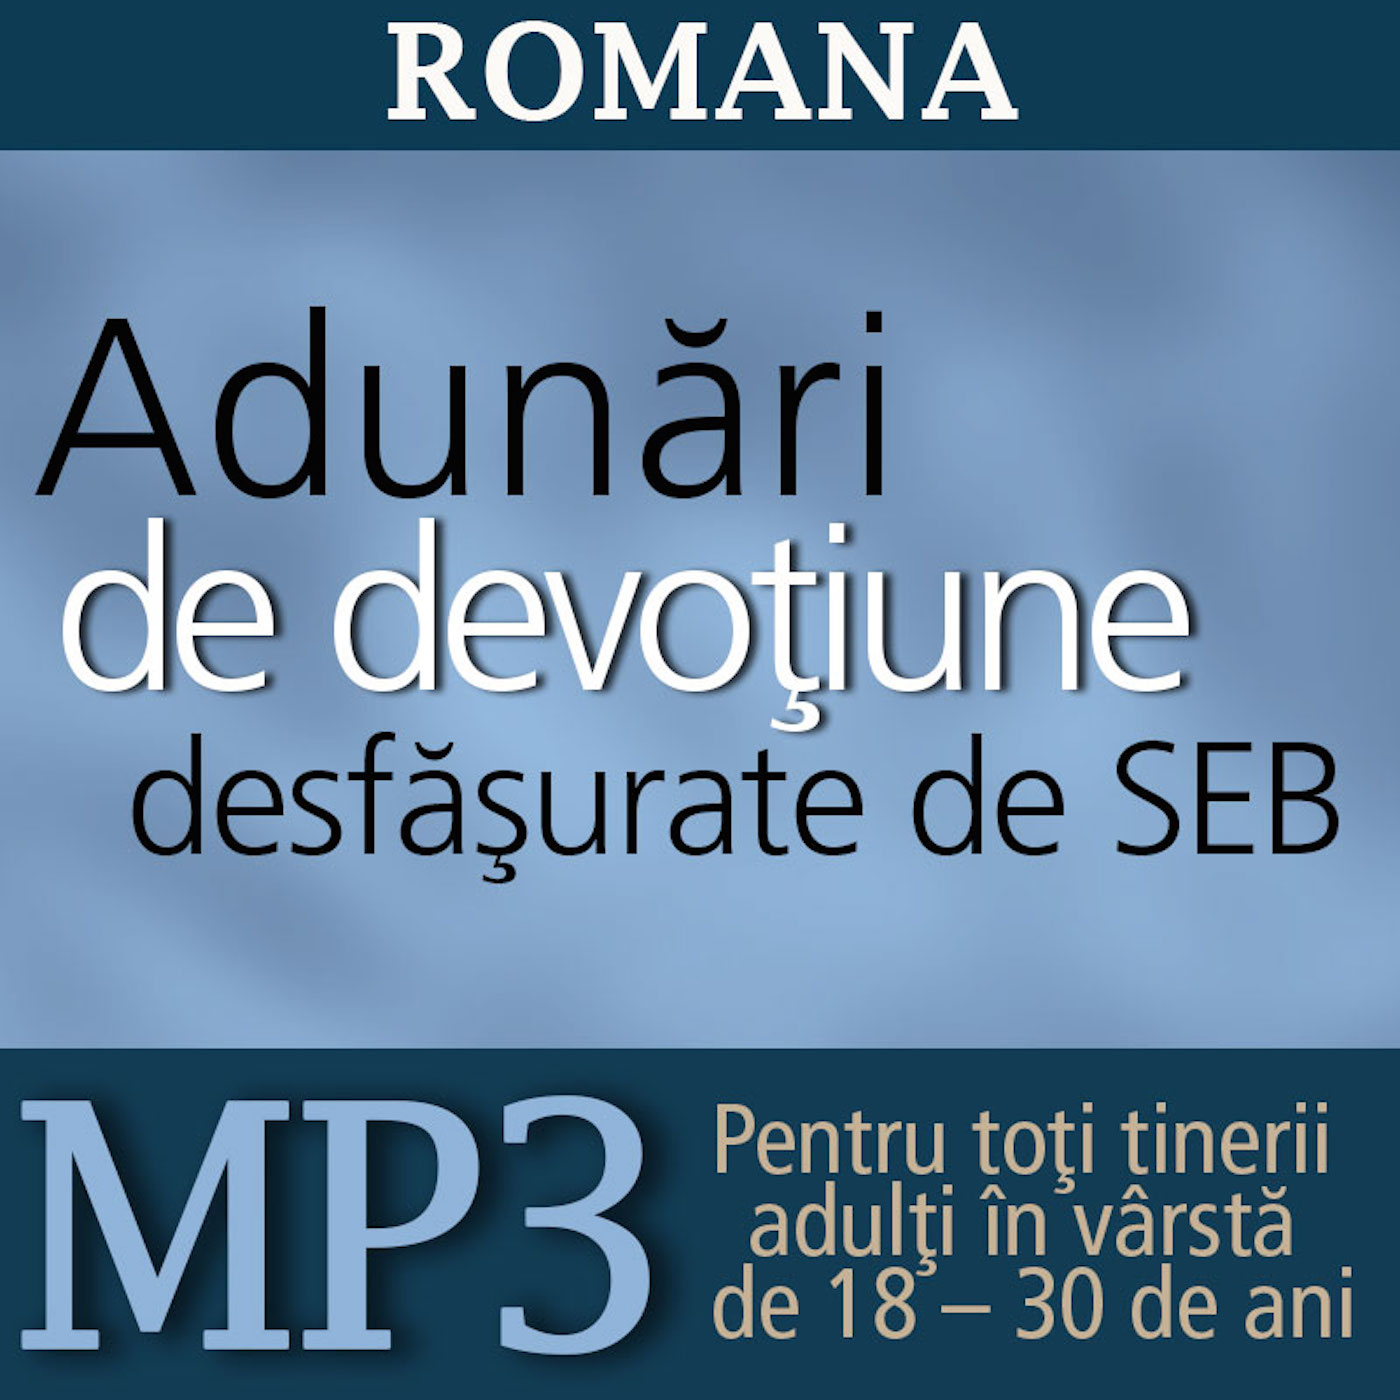 Worldwide Devotional For Young Adults | MP3 | ROMANIAN